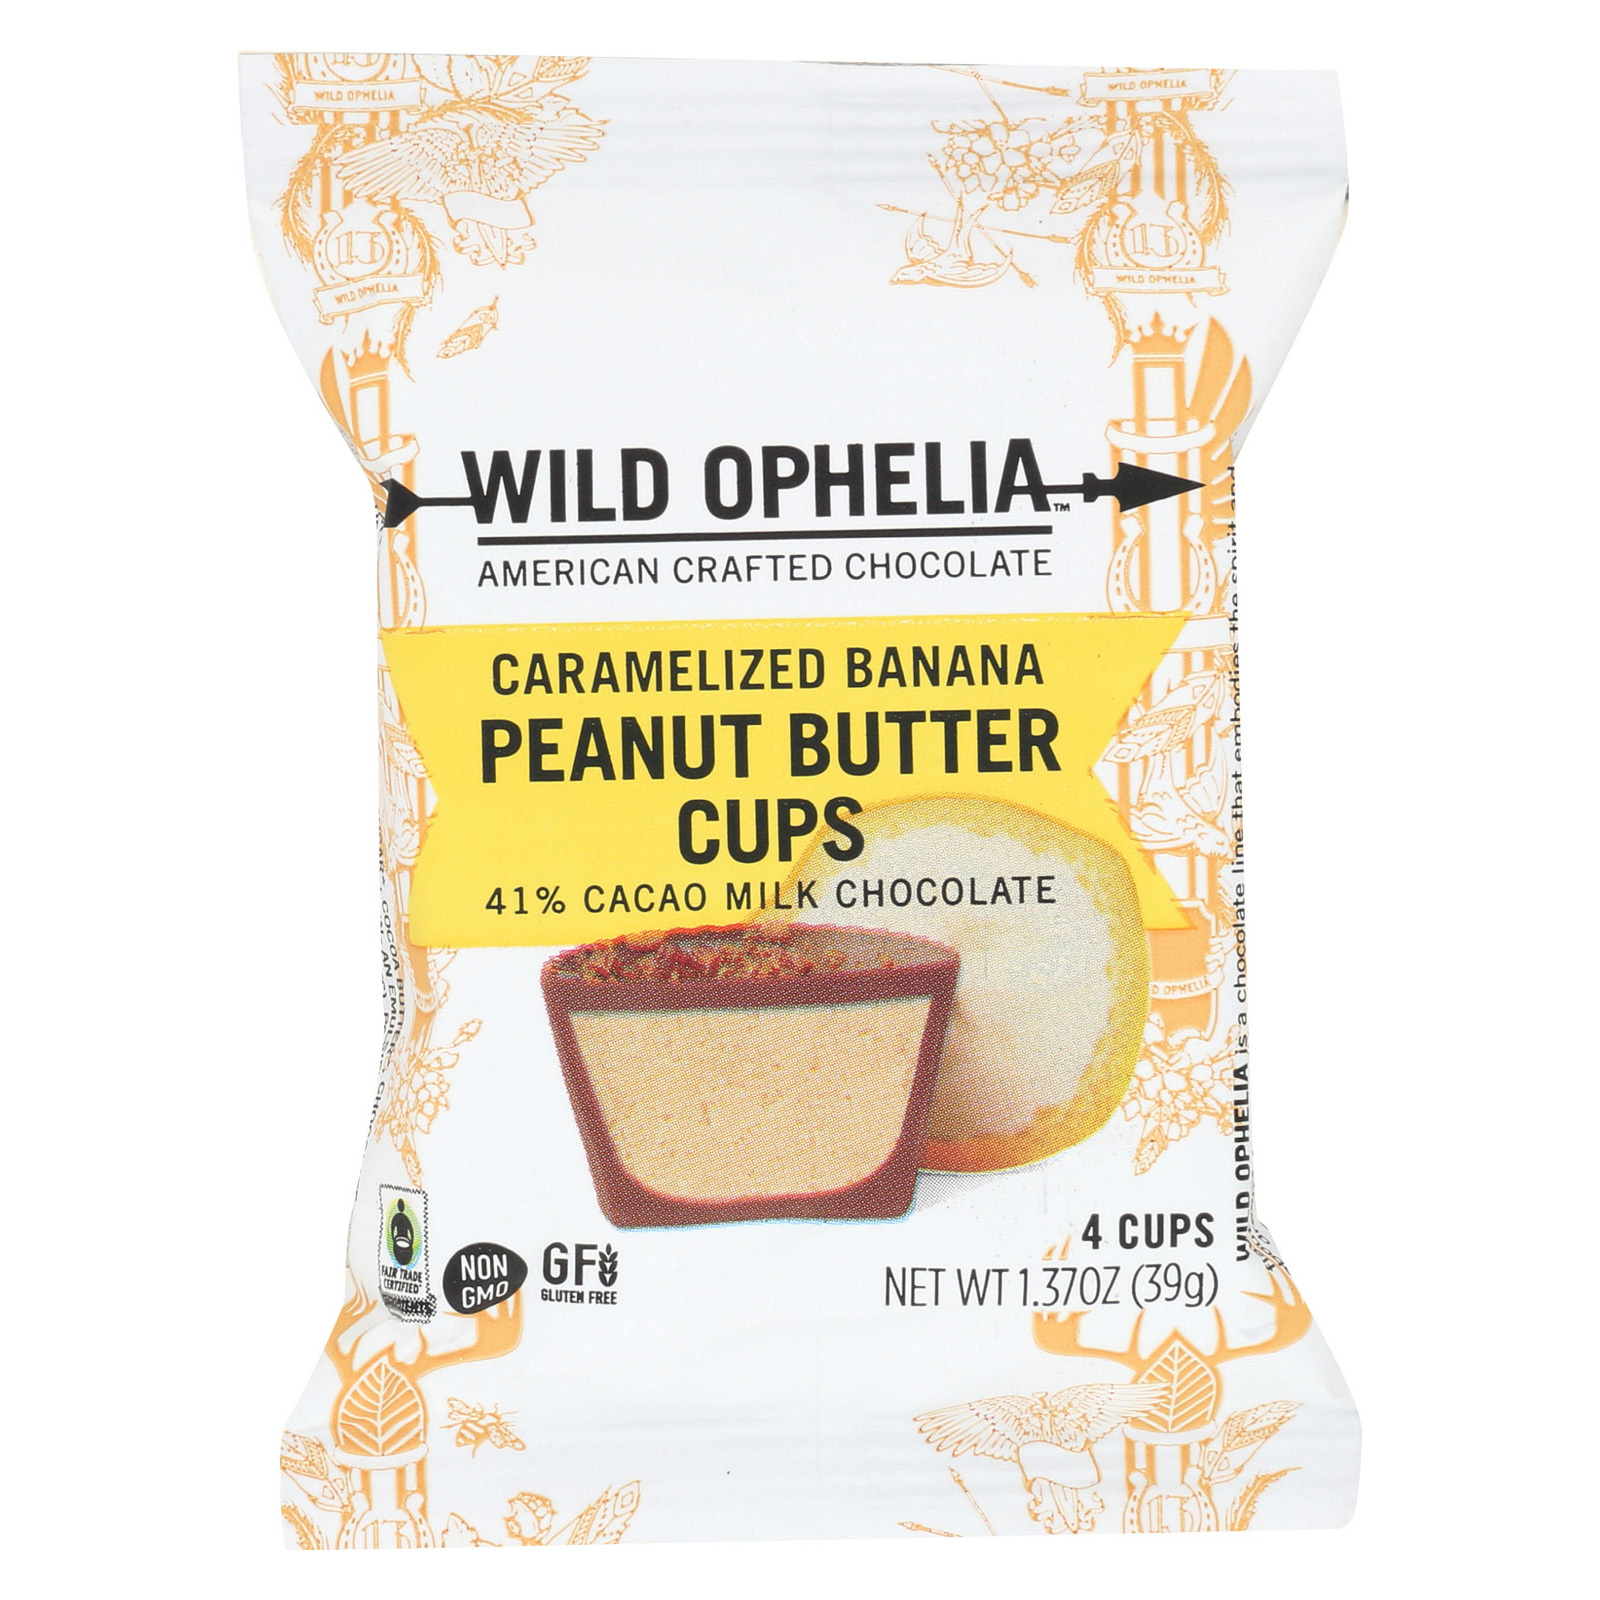 Wild Ophelia Peanut Butter Cup - Caramelzed Ban - Case of 12 - 1.37 oz